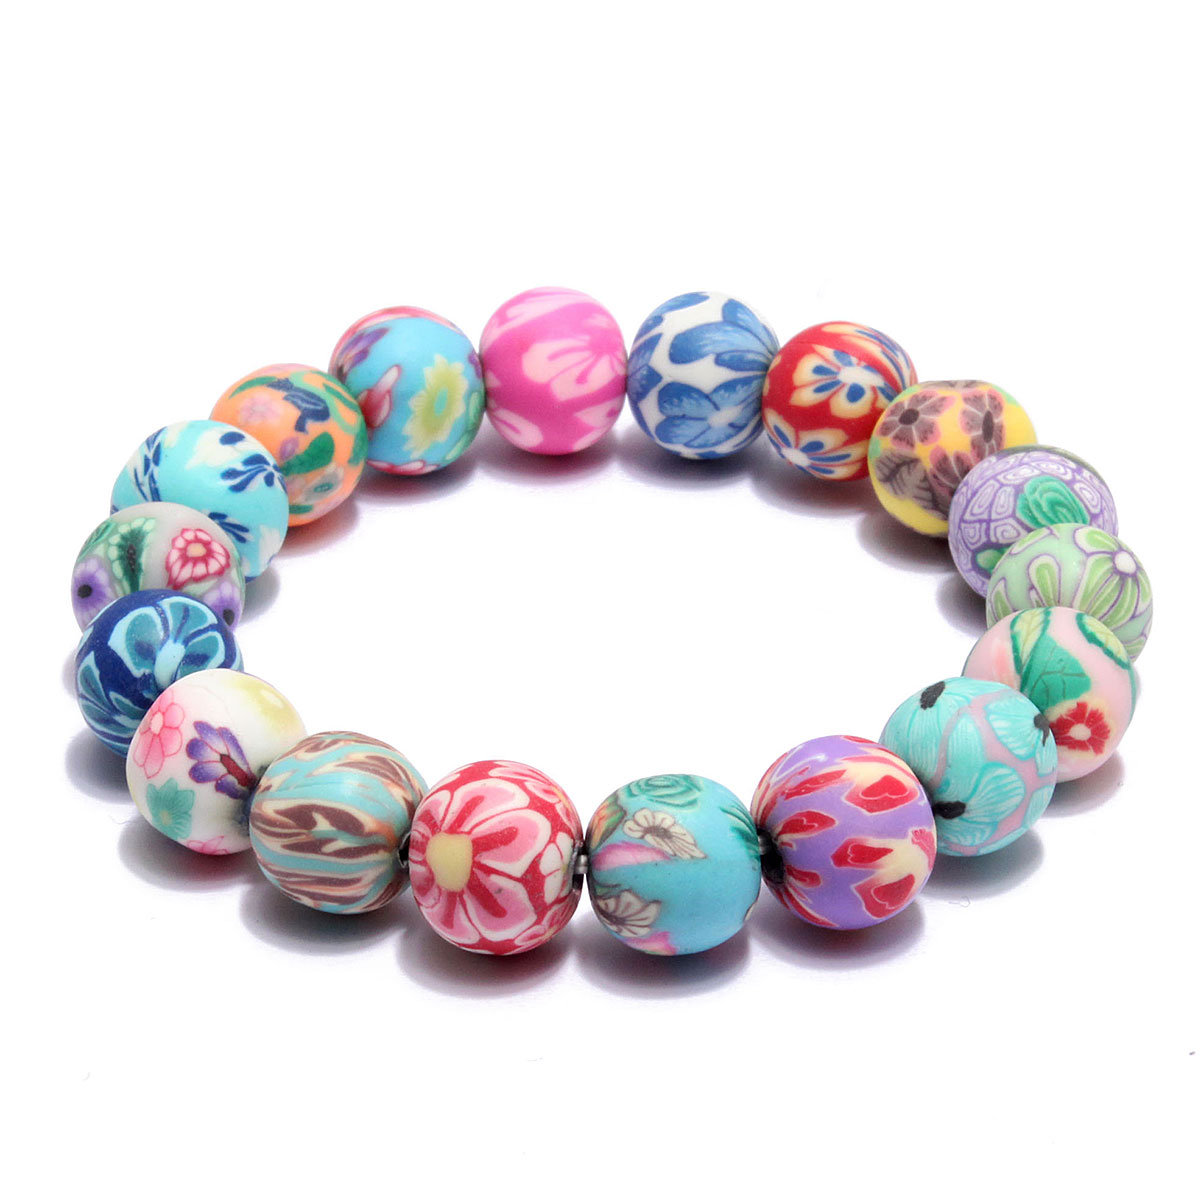 Colorful Fimo Flowers Beads Bracelet